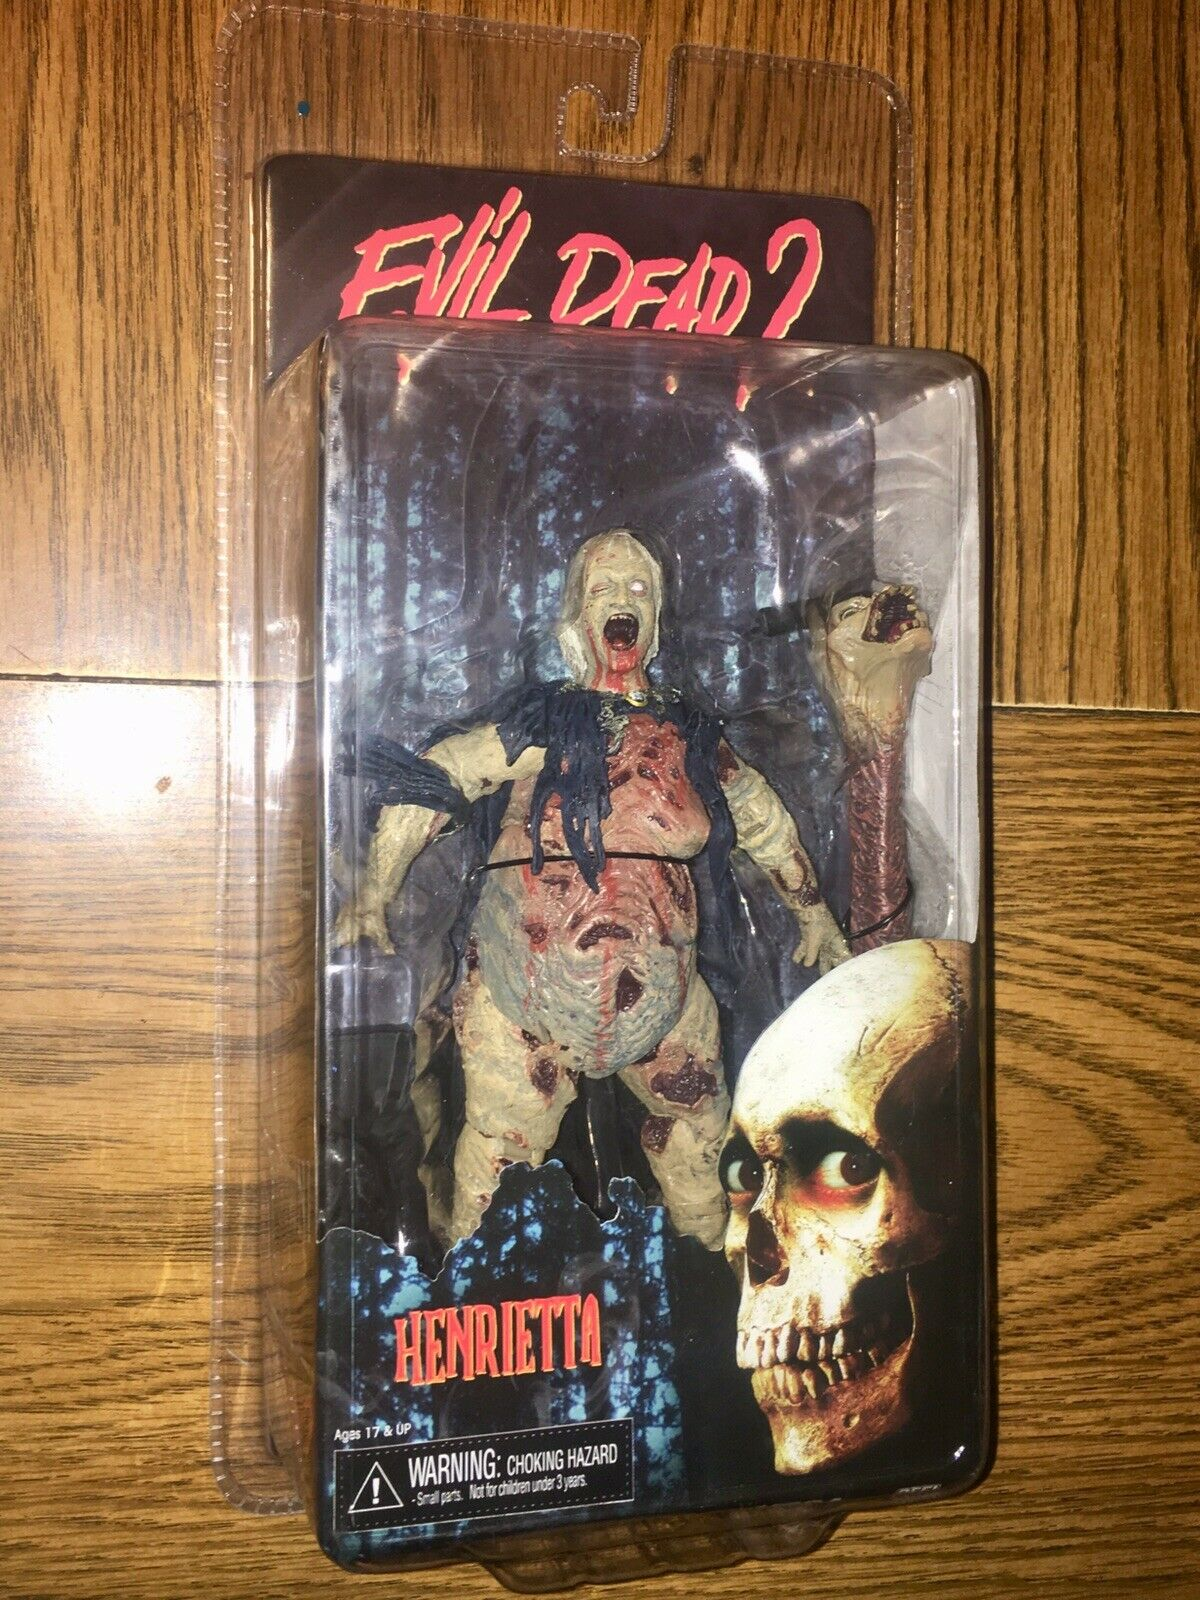 Evil Dead 2 2012 Bruce Campbell Henrietta giocattolo Army Army Army of Darkness Anniversary VHTF 9d98b7